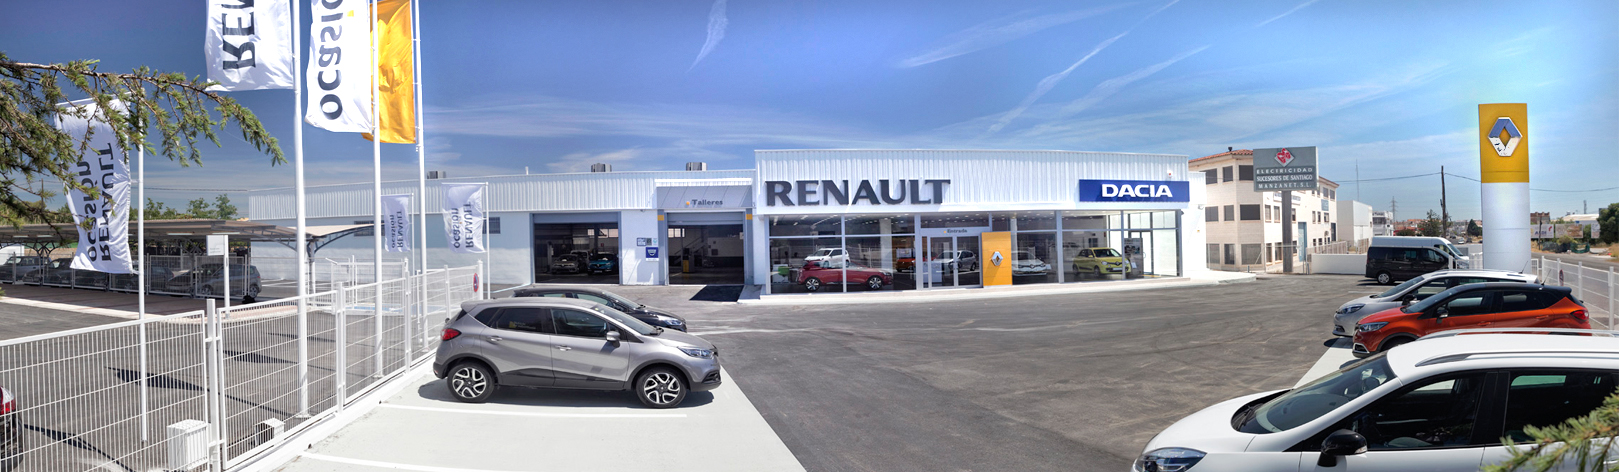 concesionario Renault Retail Group Villareal